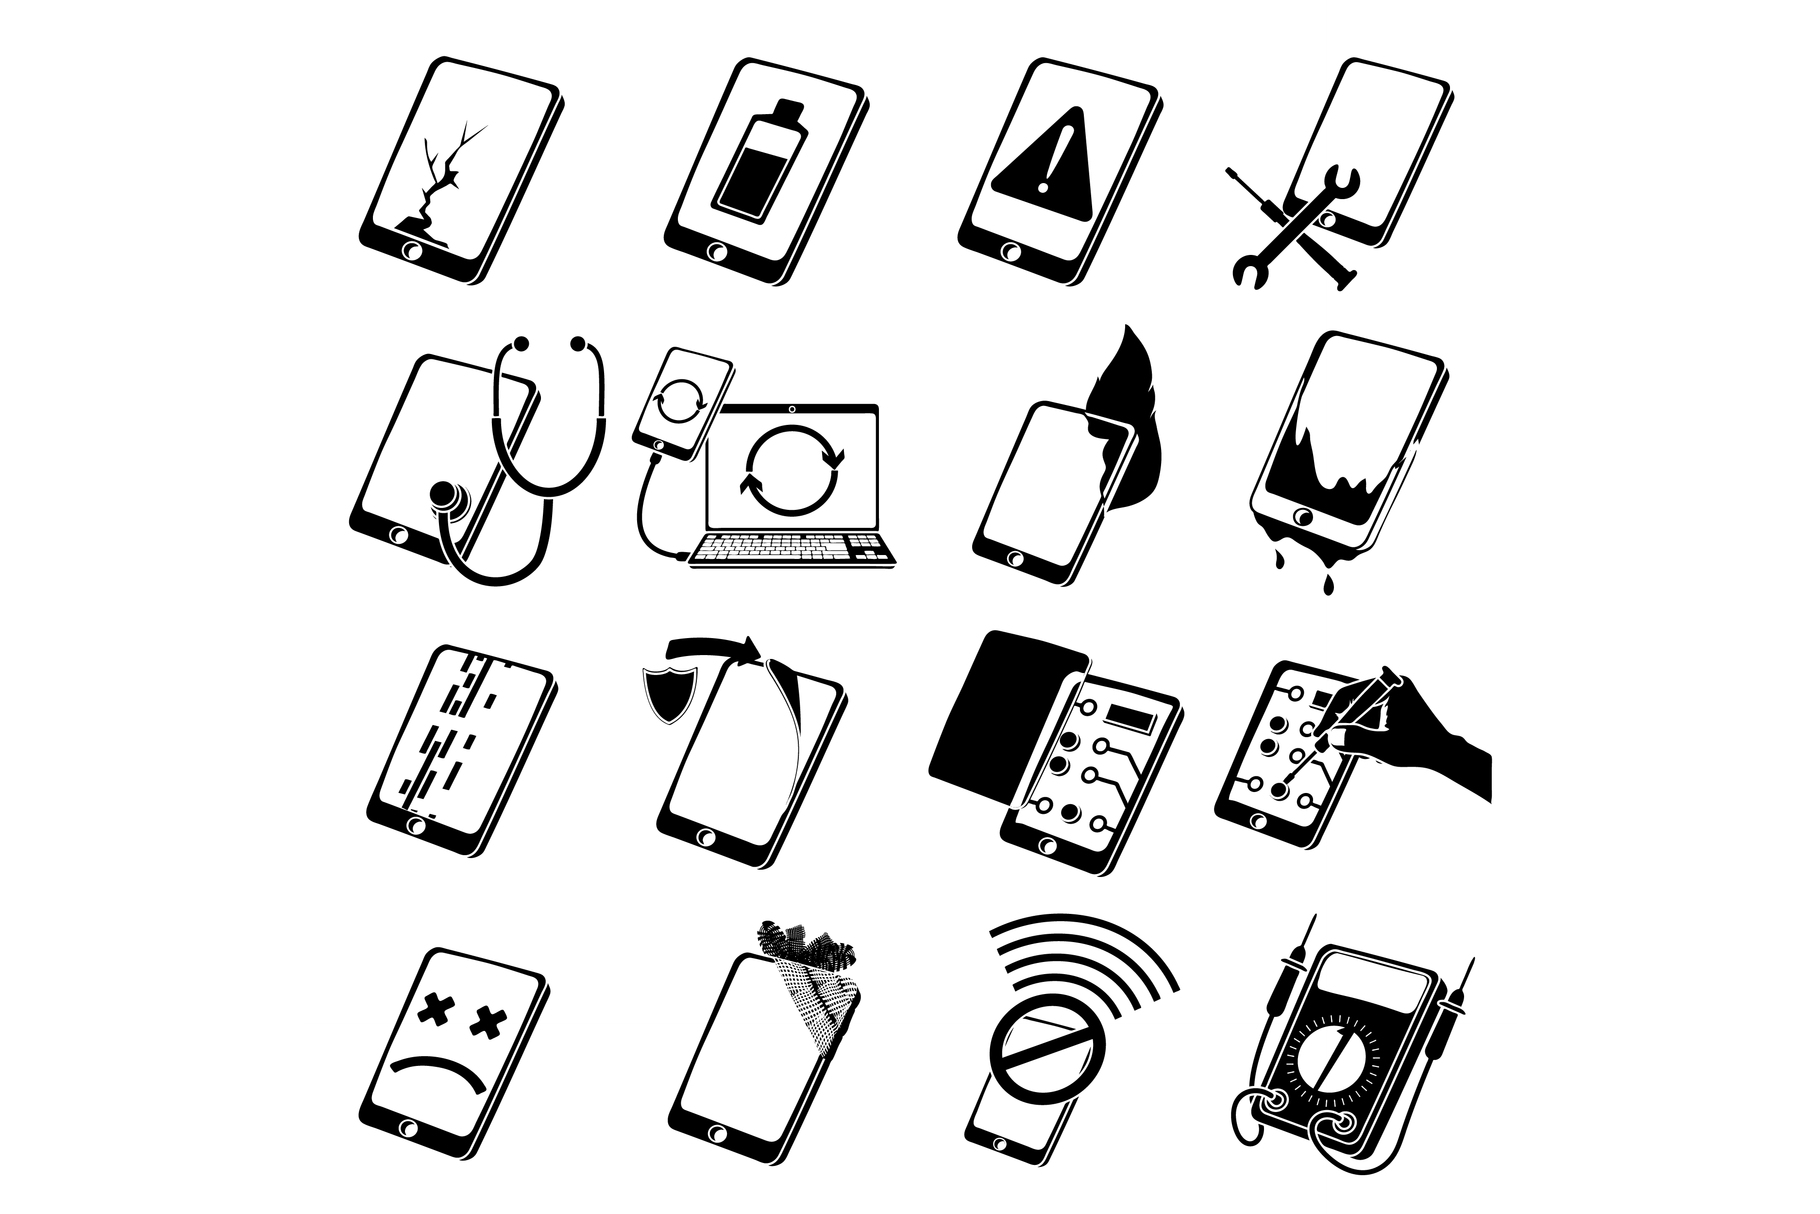 Repair phones fix icons set, simple style example image 1